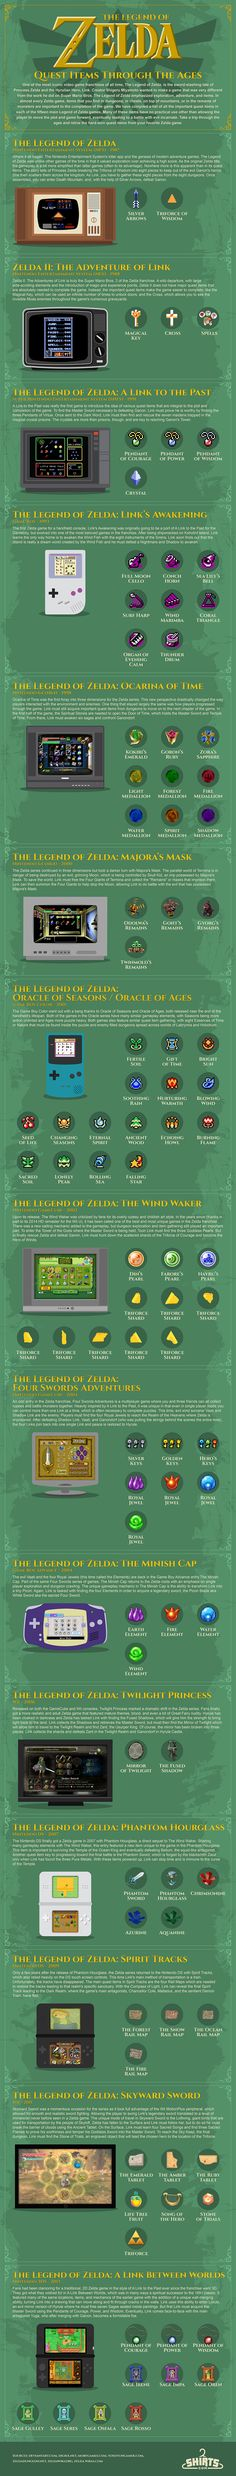 The Legend of Zelda: Quest Items Through The Ages [Infographic] #nintendo #videogames